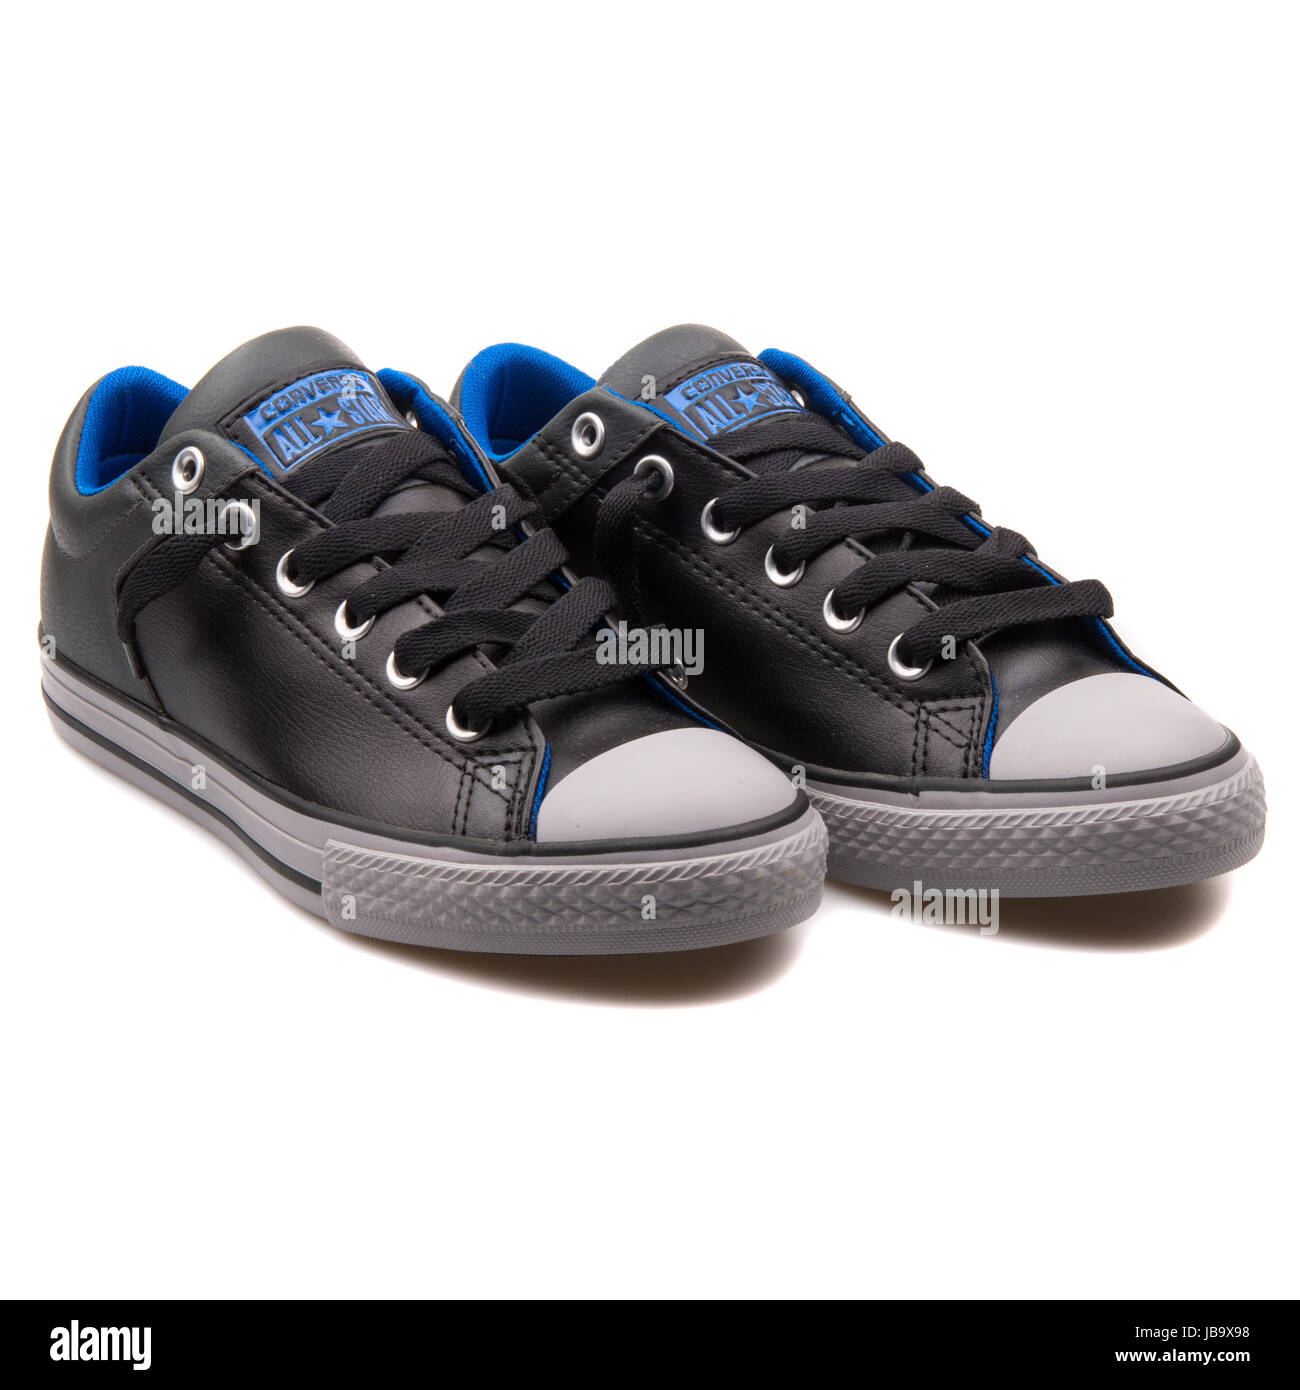 3fc64174485a Converse Chuck Taylor All Star High Street Black Storm Junior s Shoes -  650002C - Stock Image